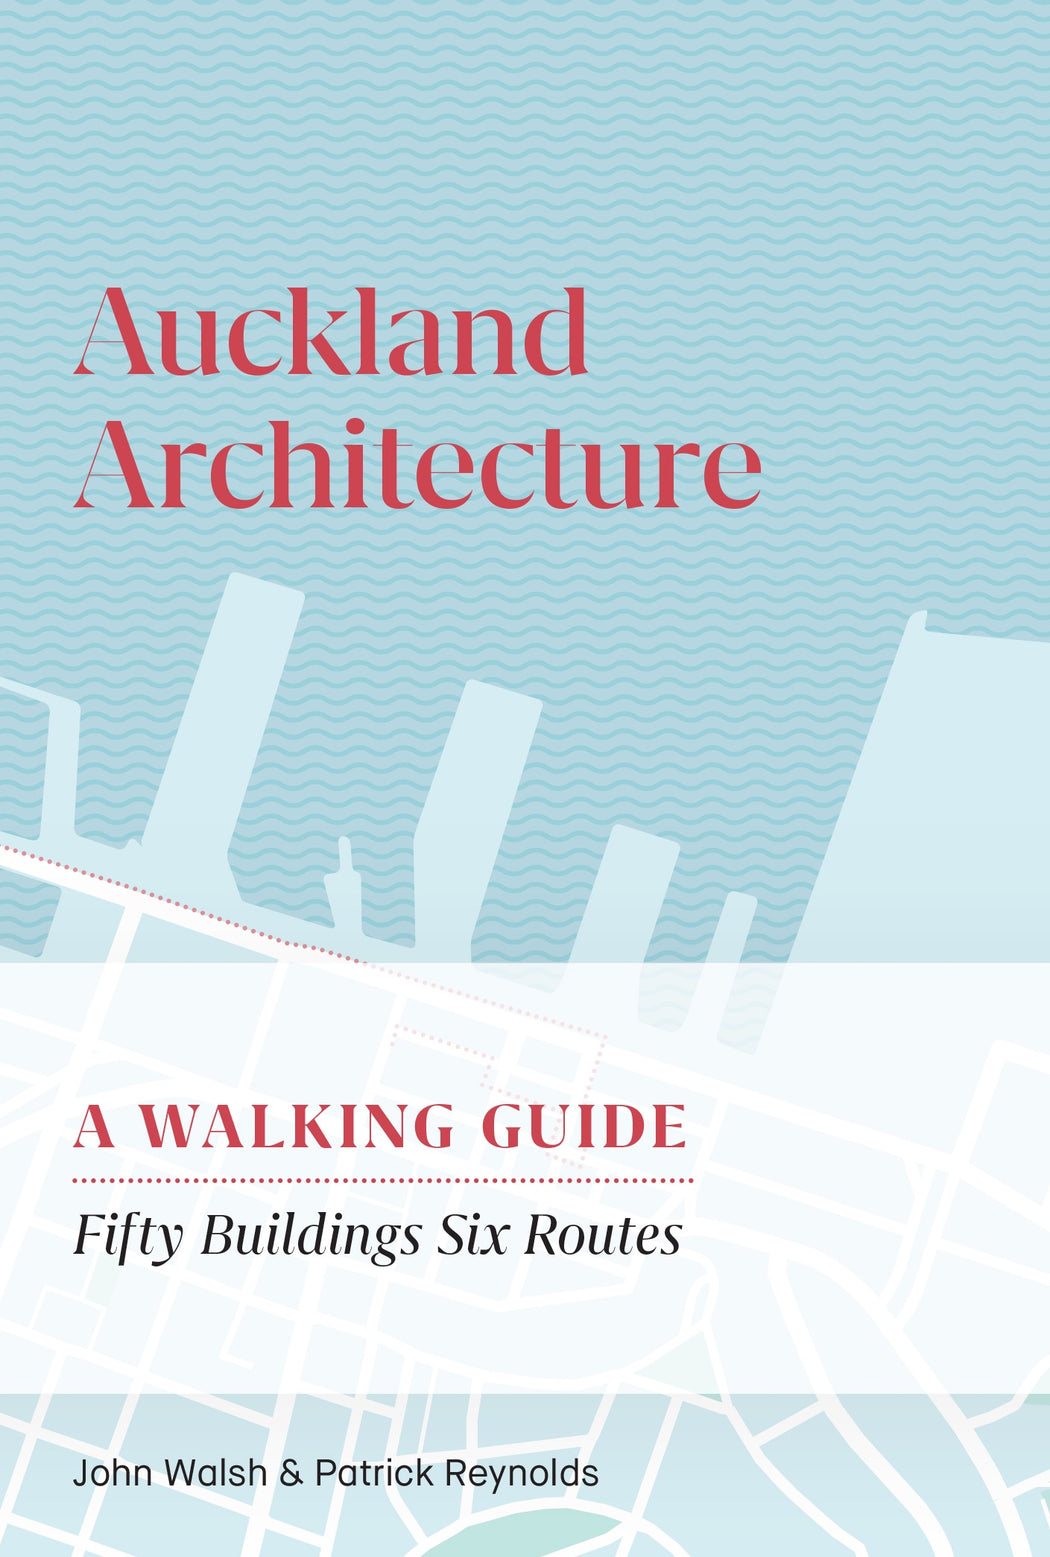 Auckland Architecture: A Walking Guide - Strange Goods